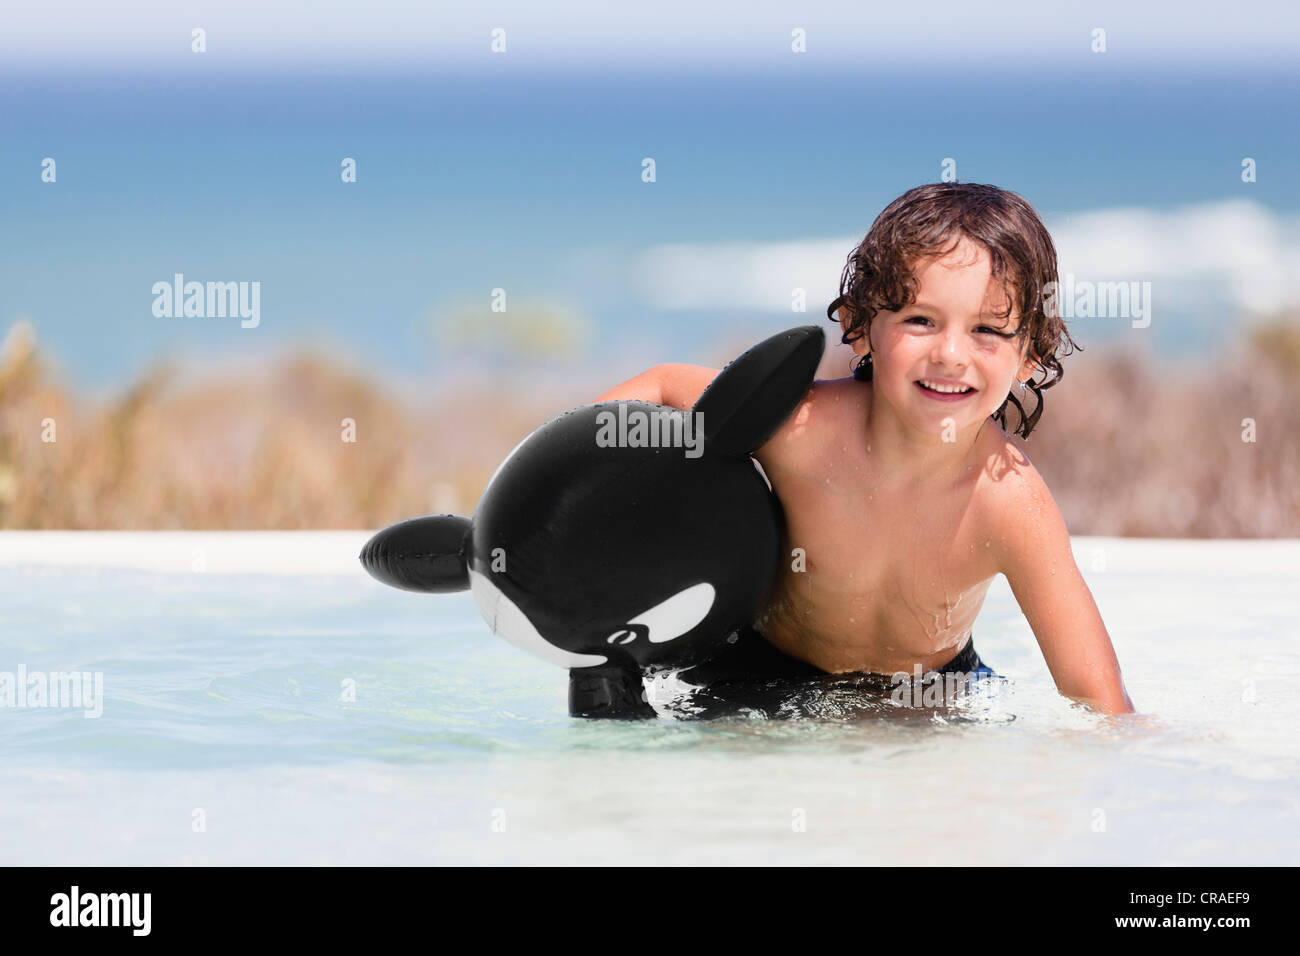 Boy playing with toy whale in pool - Stock Image